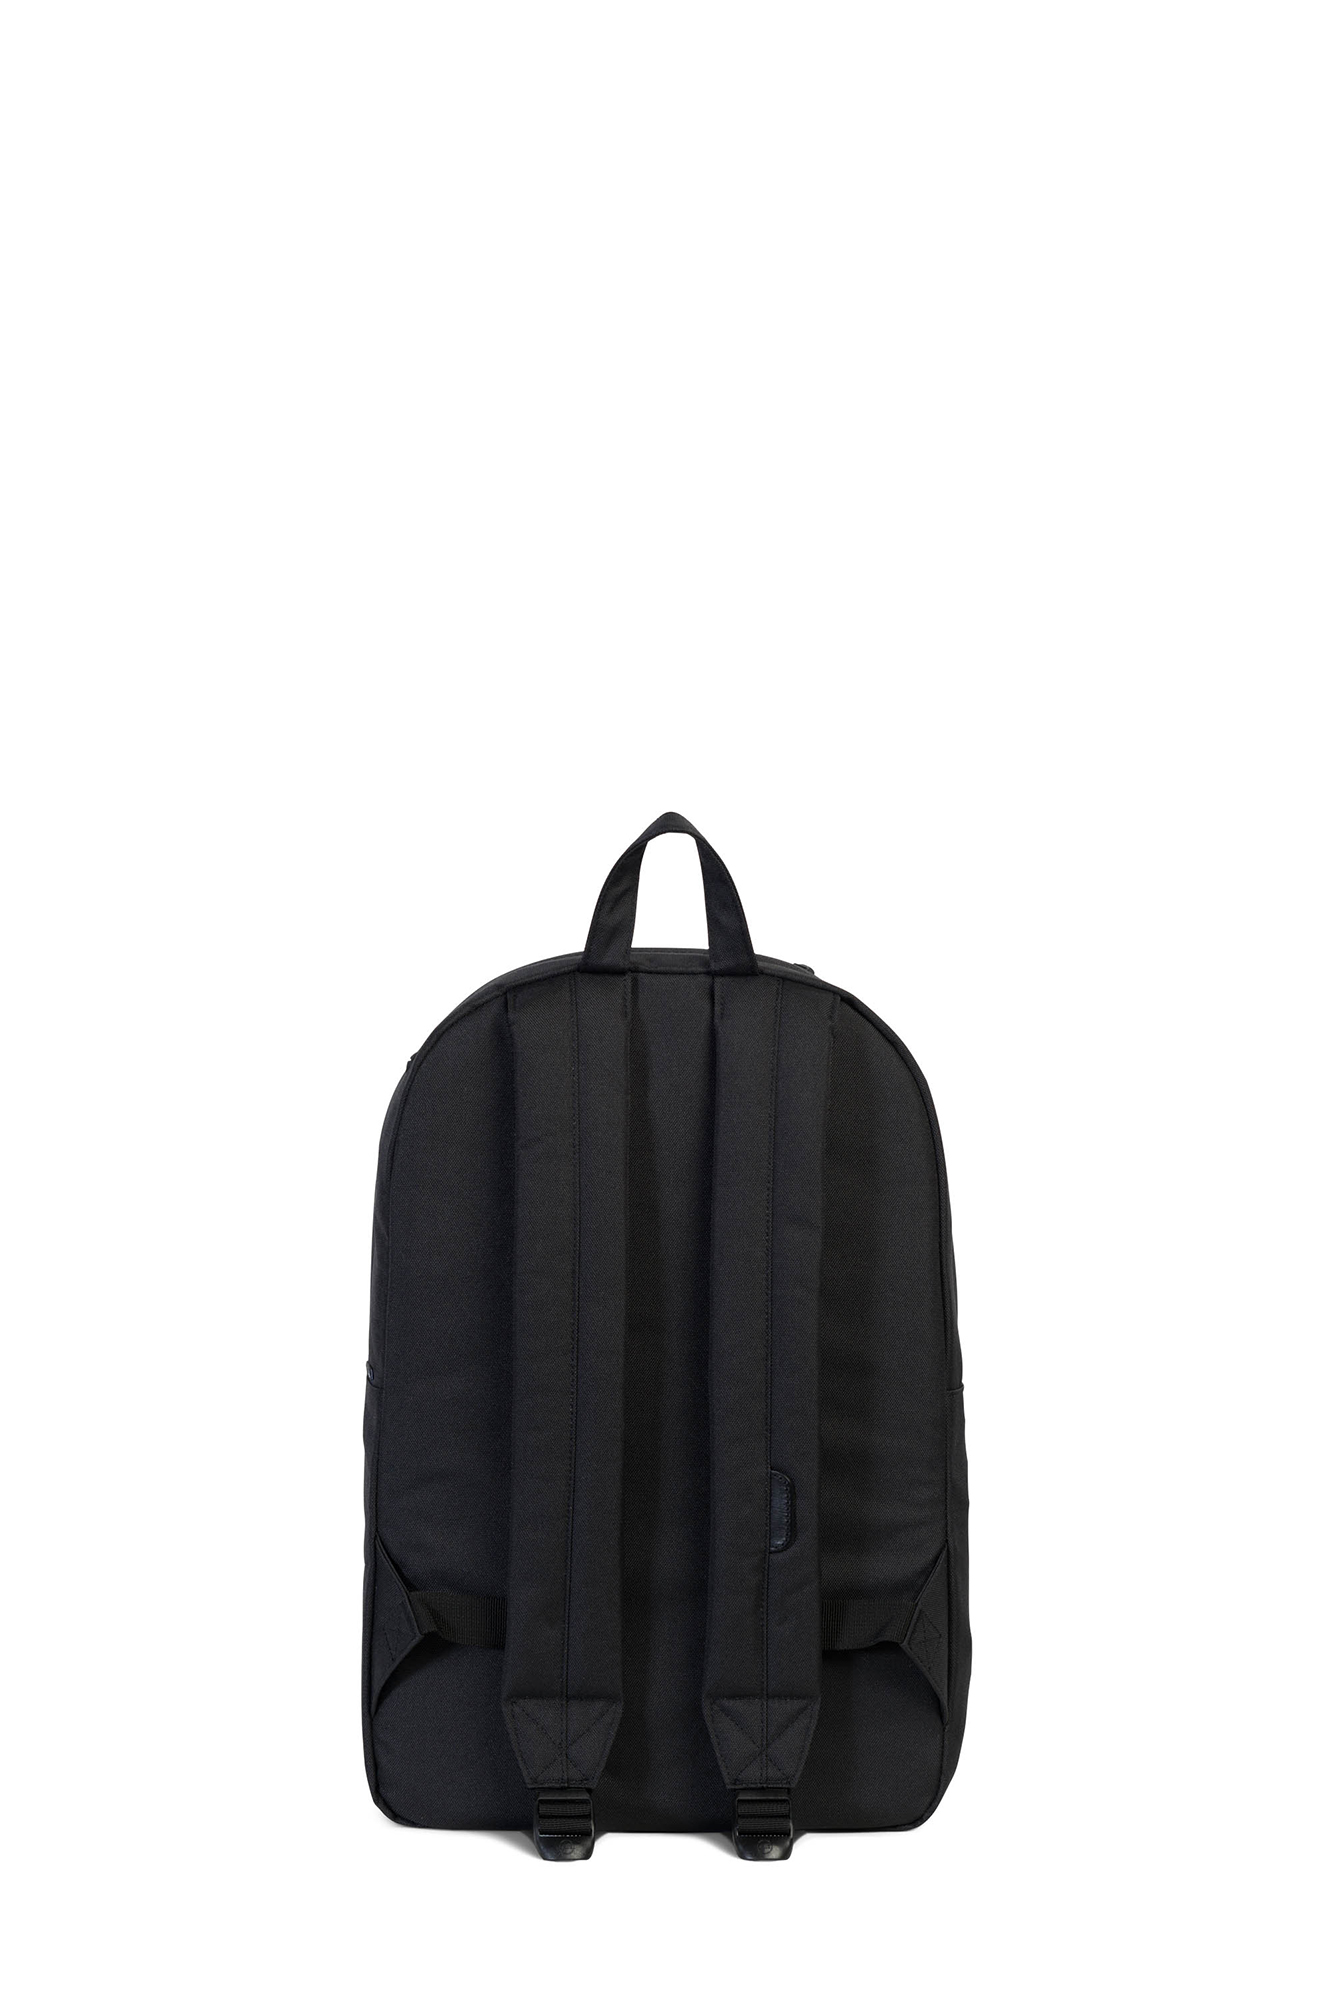 Herschel - Black Heritage Offset Backpack